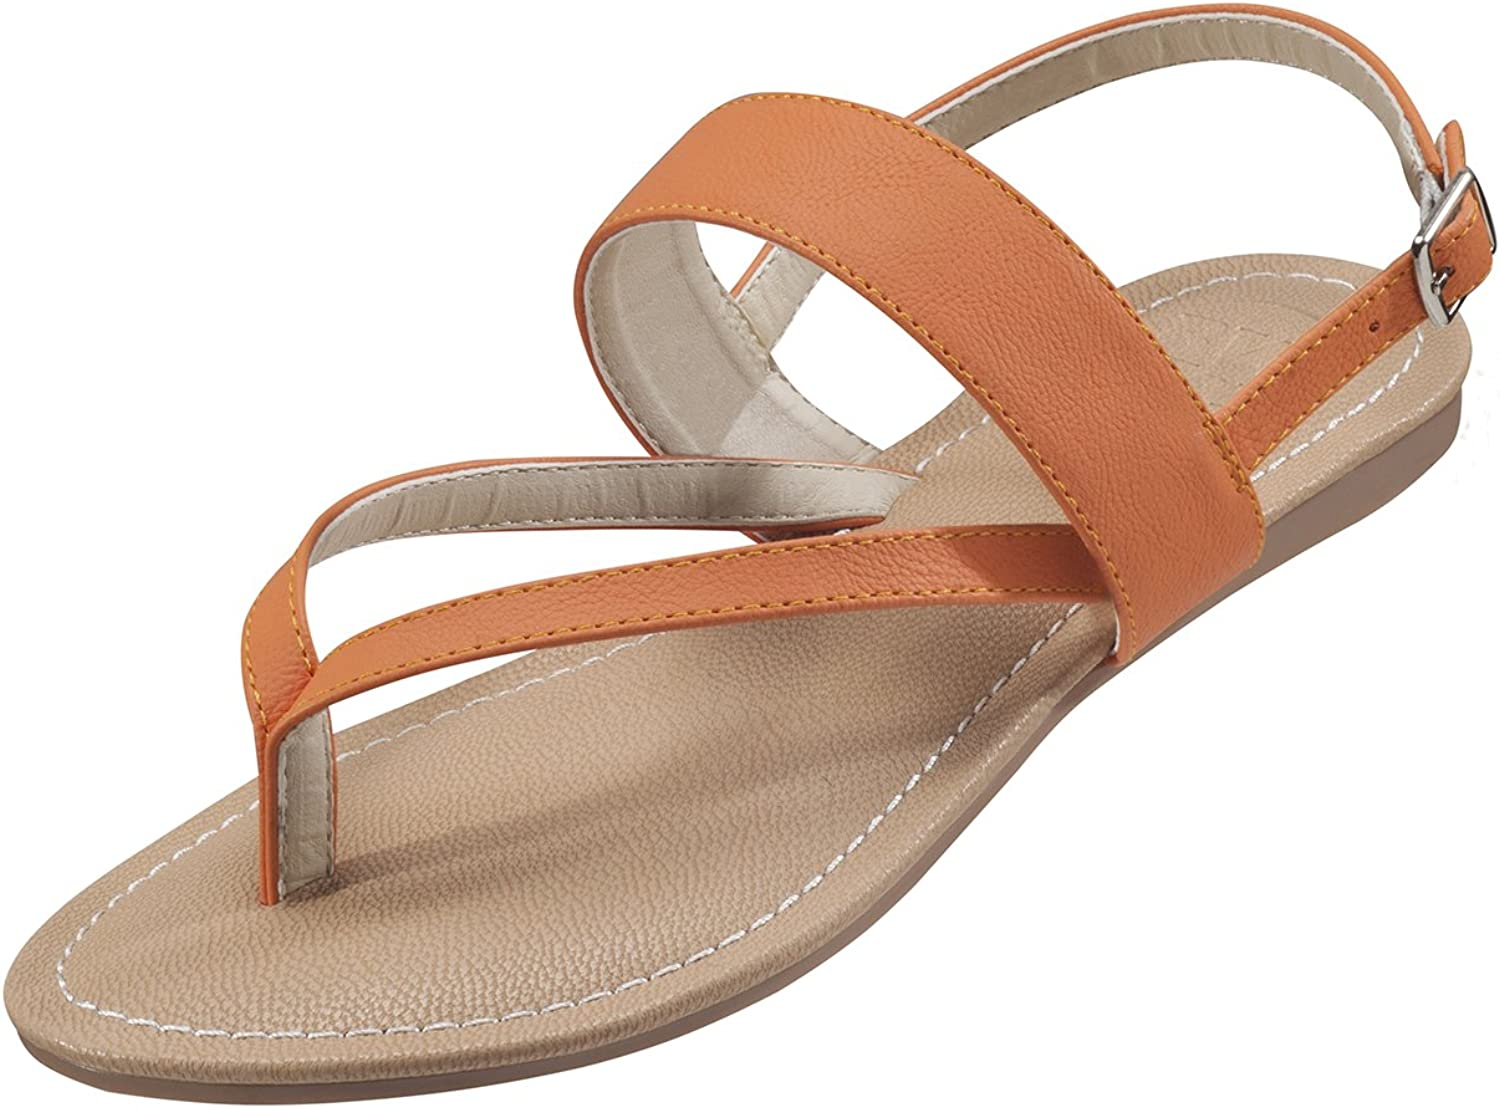 BW Sandals Women's Layia Sandals